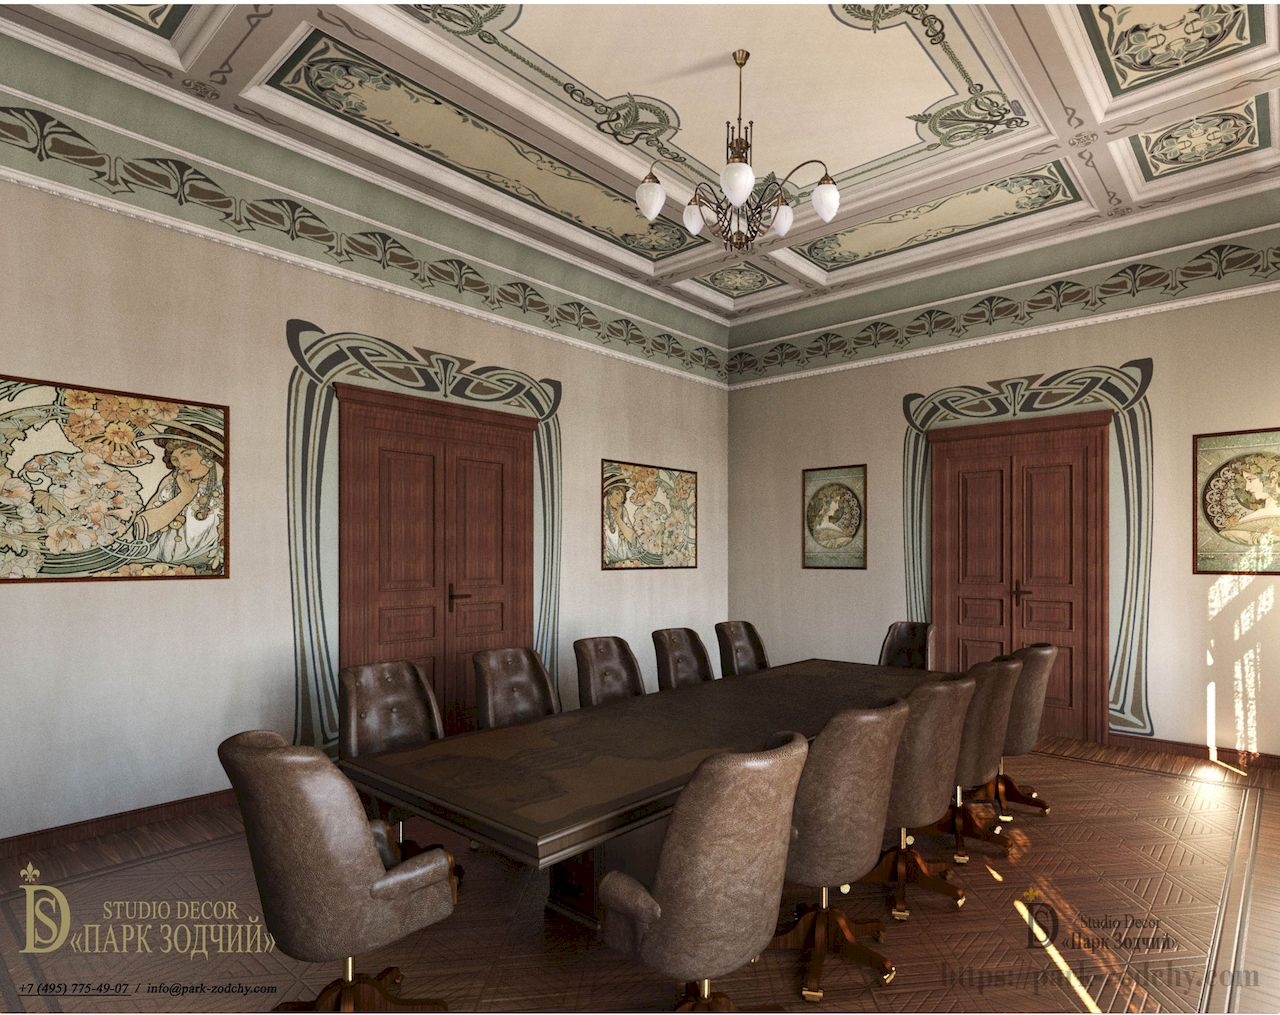 Visualization of the cabinet project in the Art Nouveau style with painting of walls, ceilings, paintings